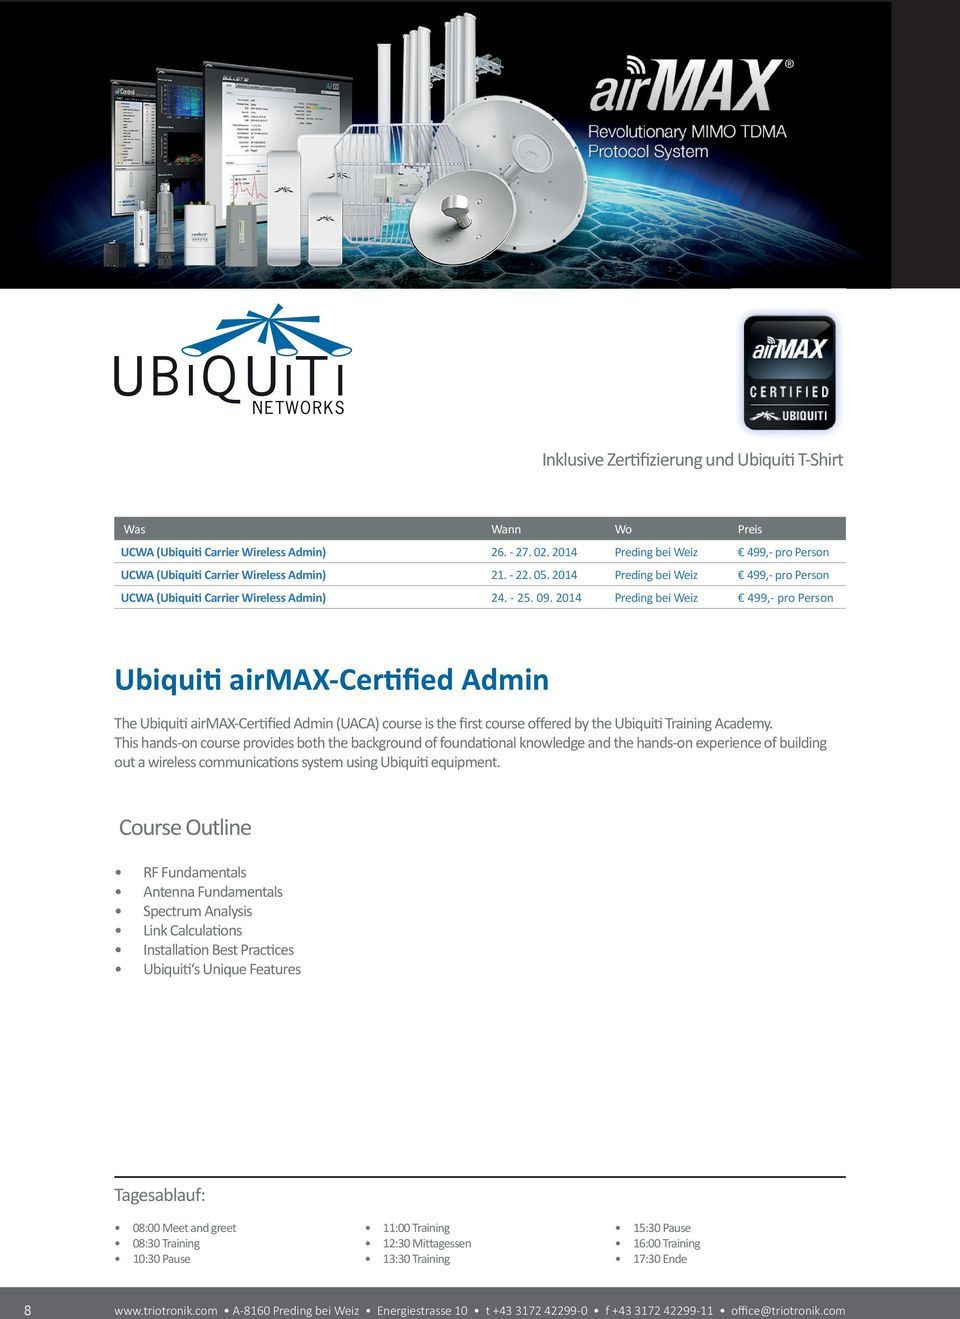 2014 Preding bei Weiz 499,- pro Person Ubiquiti airmax-certified Admin The Ubiquiti airmax-certified Admin (UACA) course is the first course offered by the Ubiquiti Training Academy.